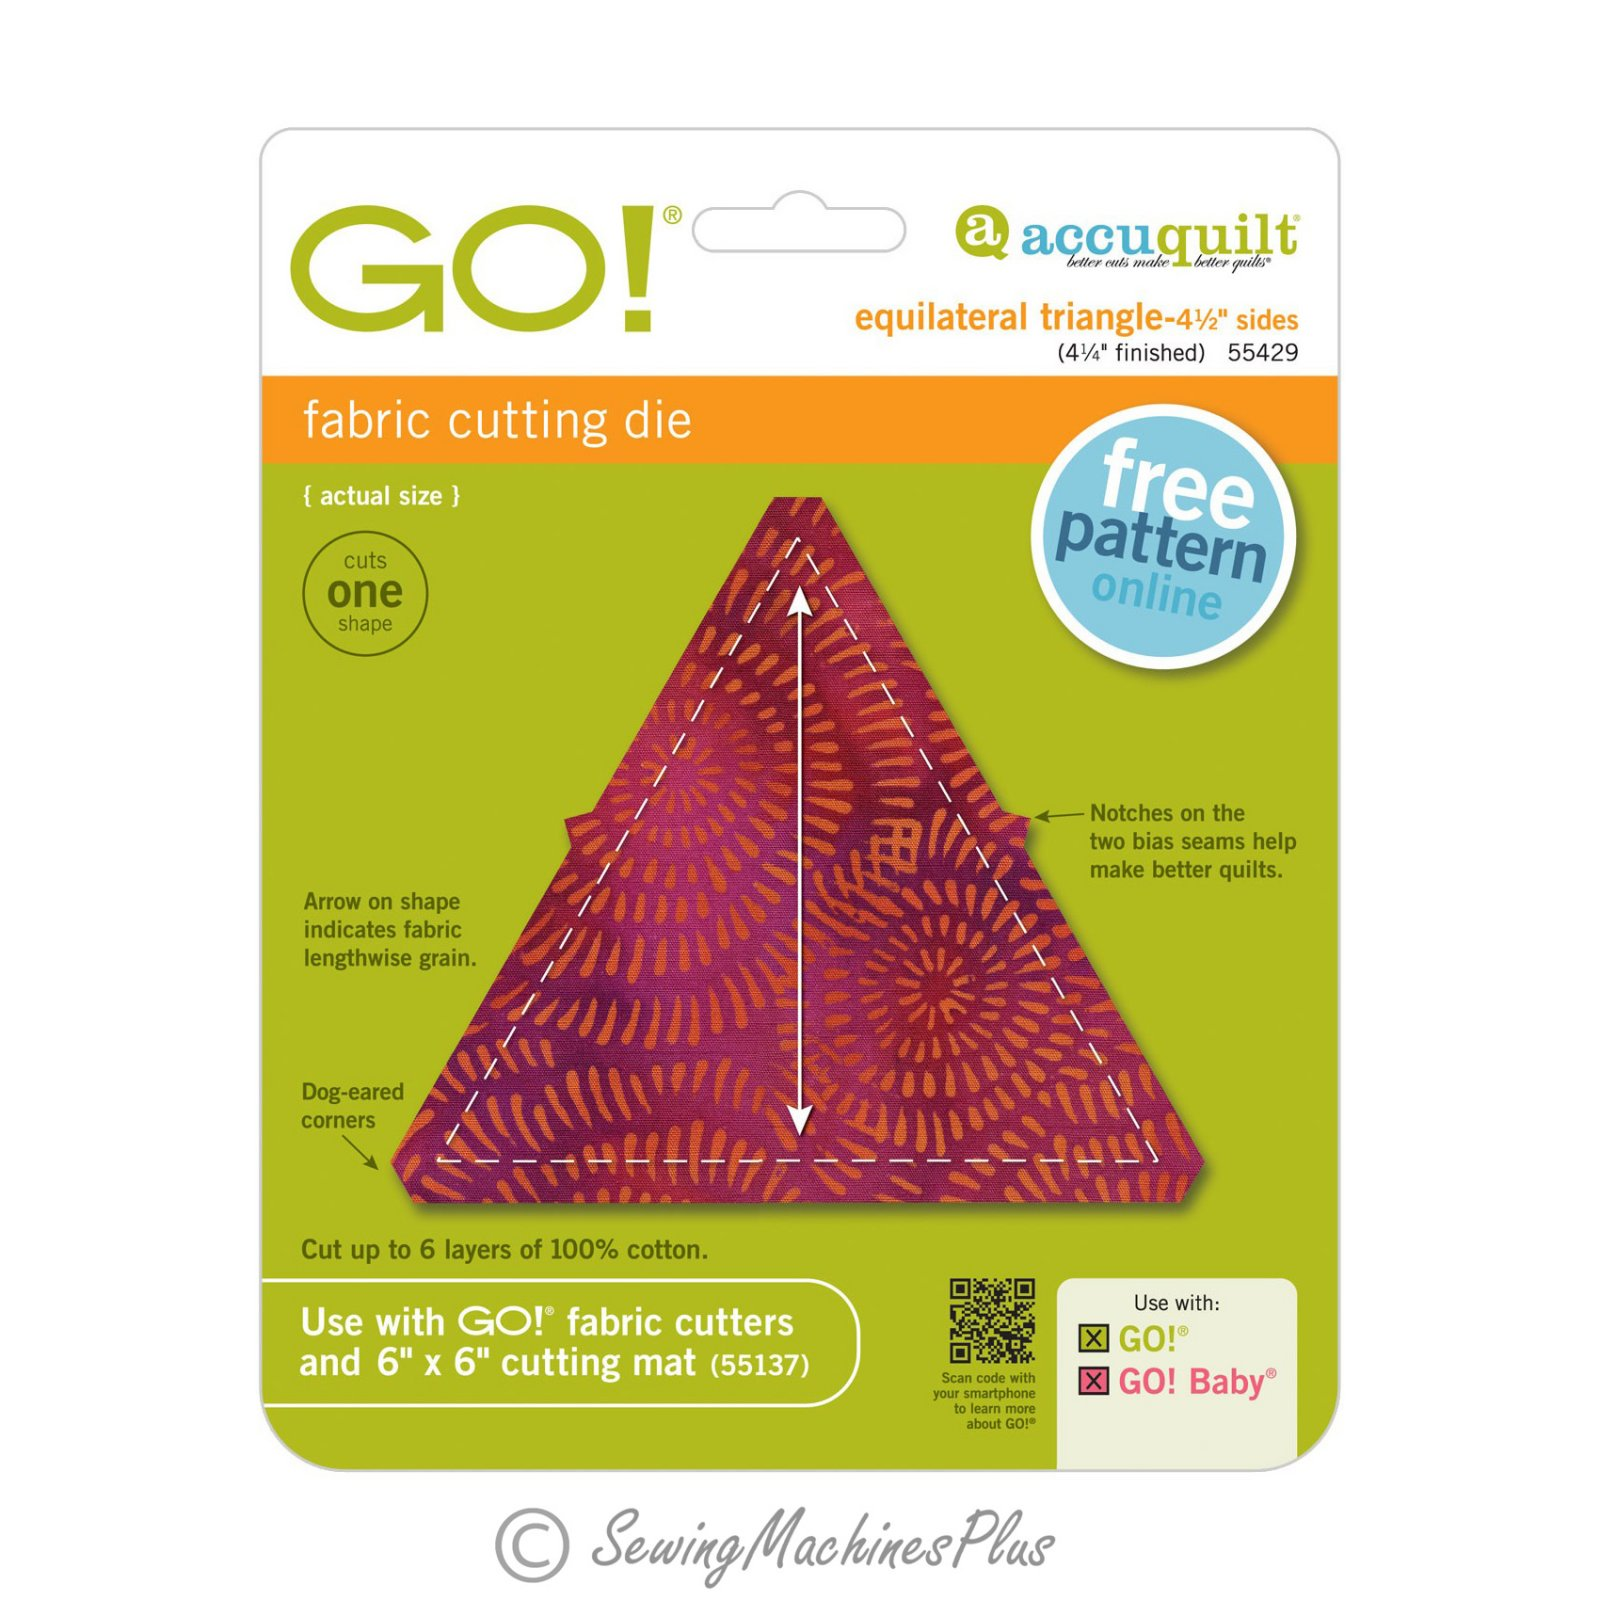 Accuquilt GO! Equilateral Triangle 4 1/2 Sides (4 1/4 Finished) Die - 55429